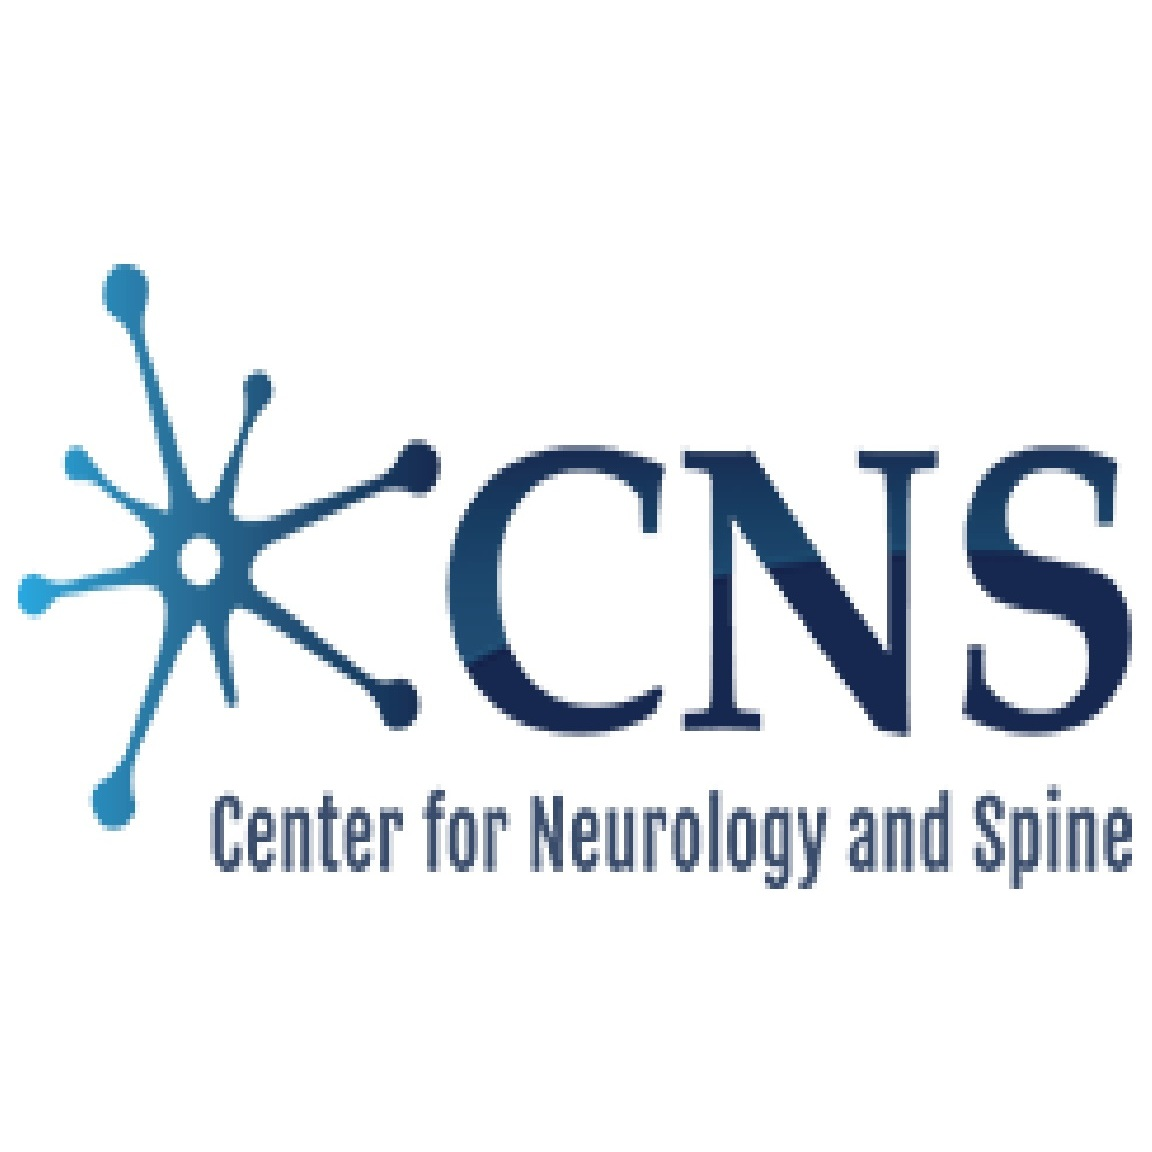 Center for Neurology and Spine